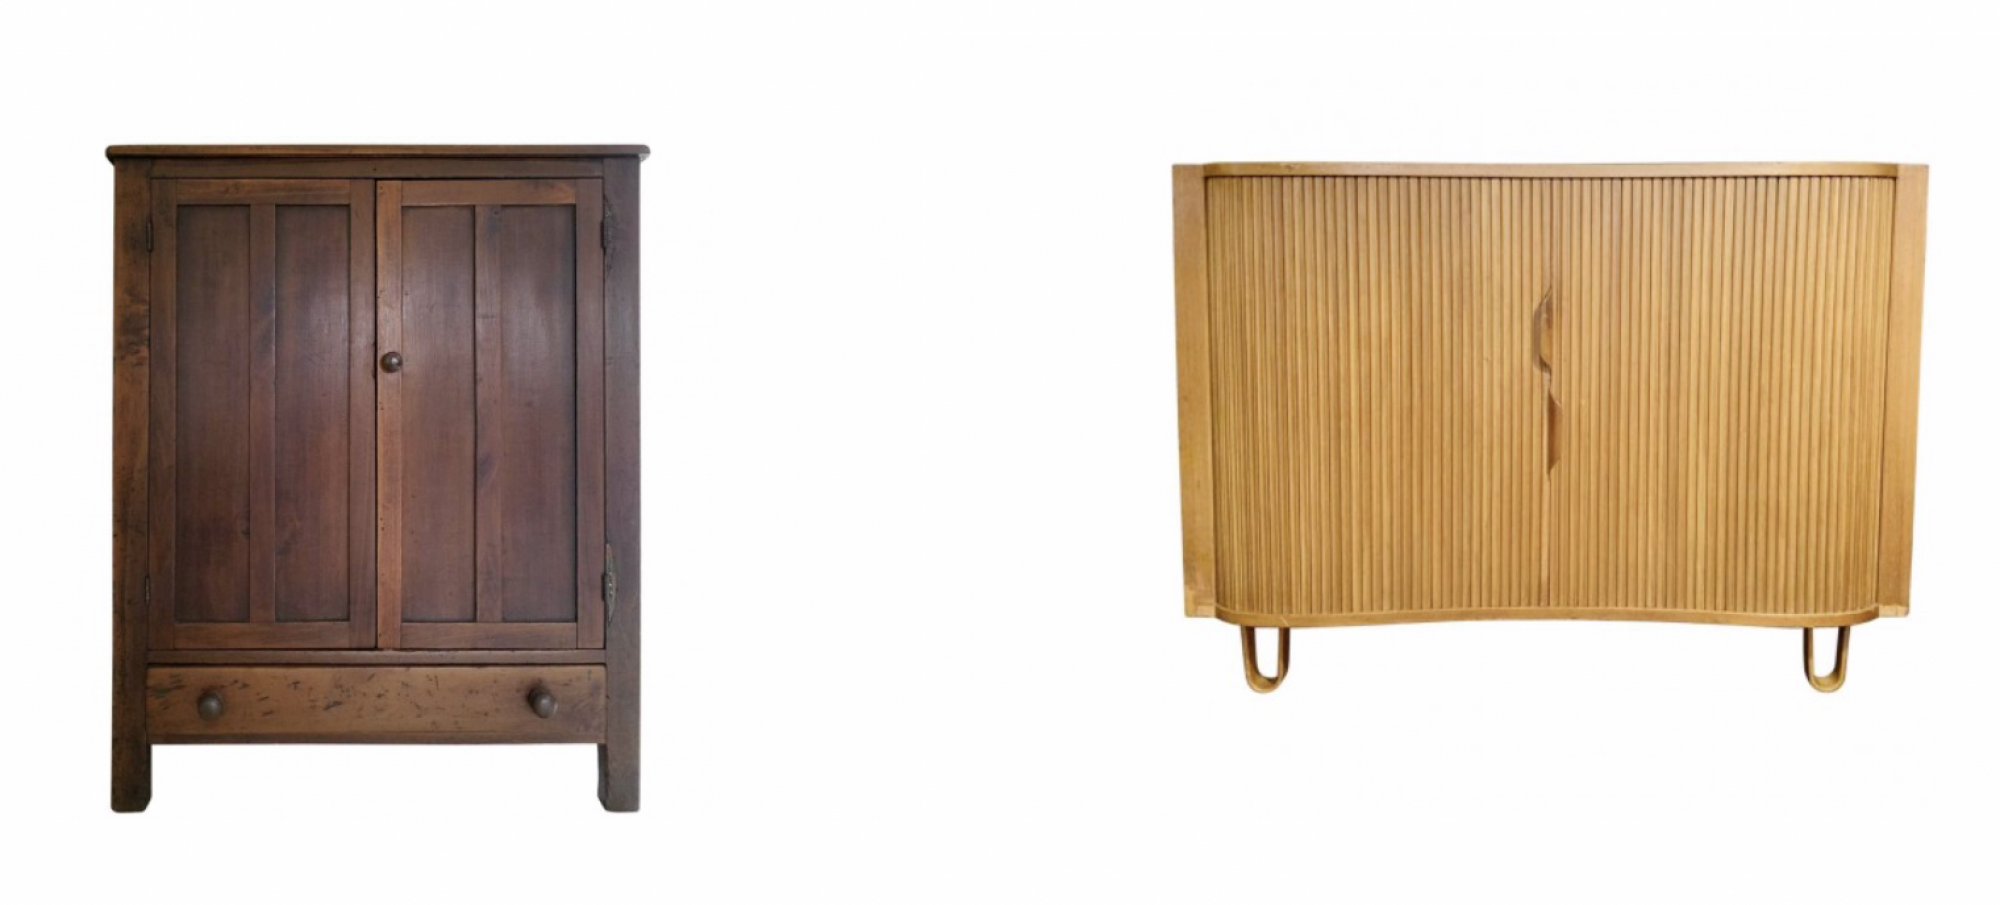 Find everything from an Americana Style 20th century pie safe to a Mid-Century Edward Wormley's mid-20th century Mister Cabinet on Sotheby's Home. (Images: Sotheby's Home)